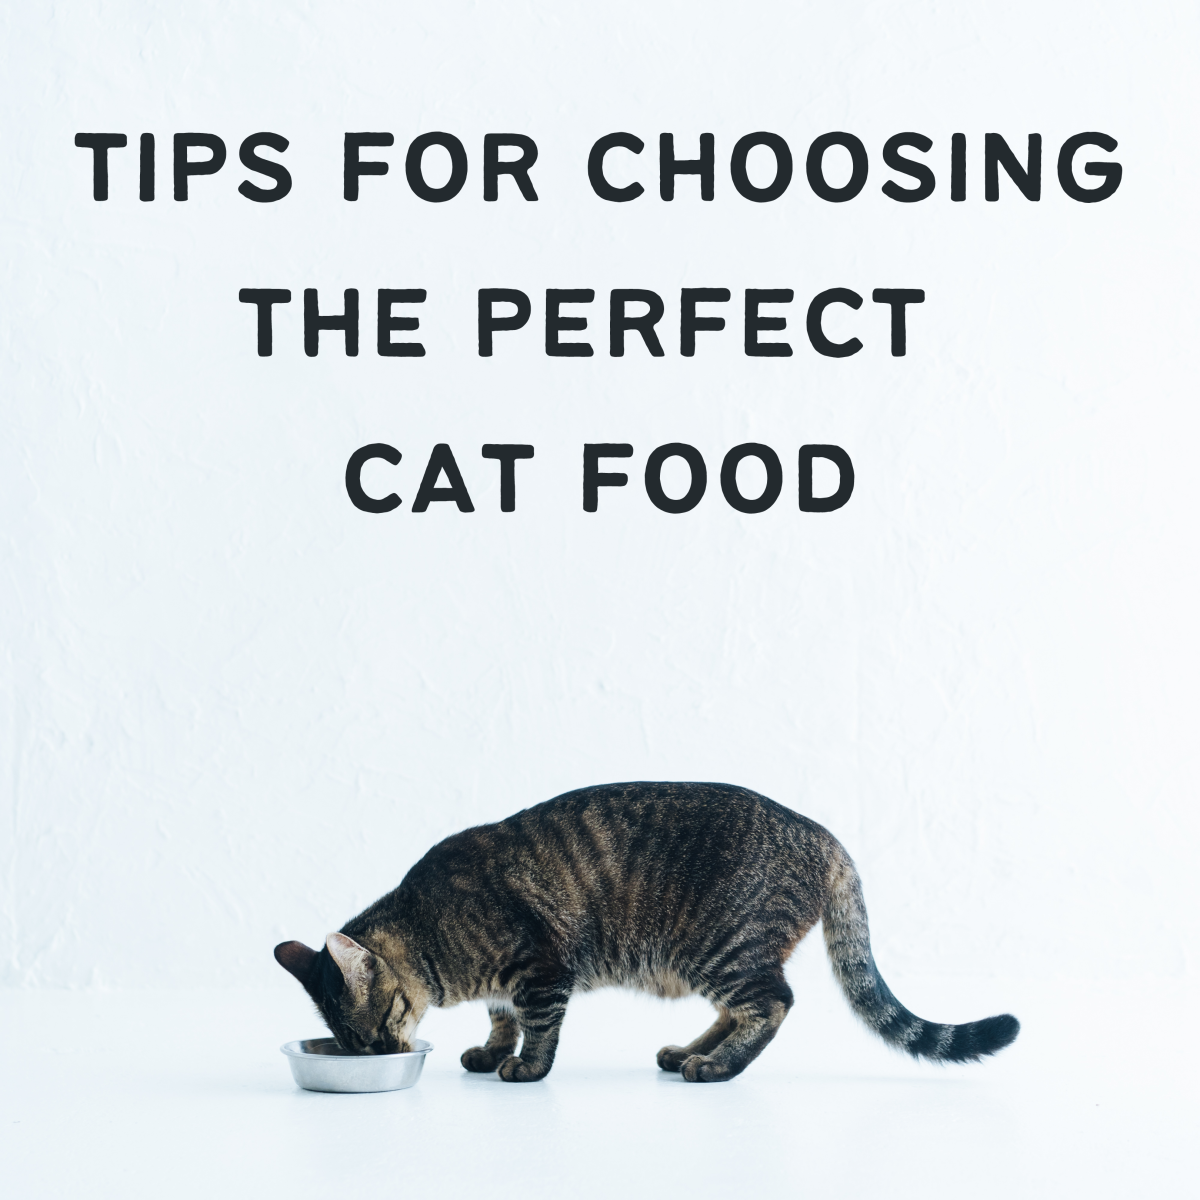 How to Choose the Best Cat Food for Your Cat